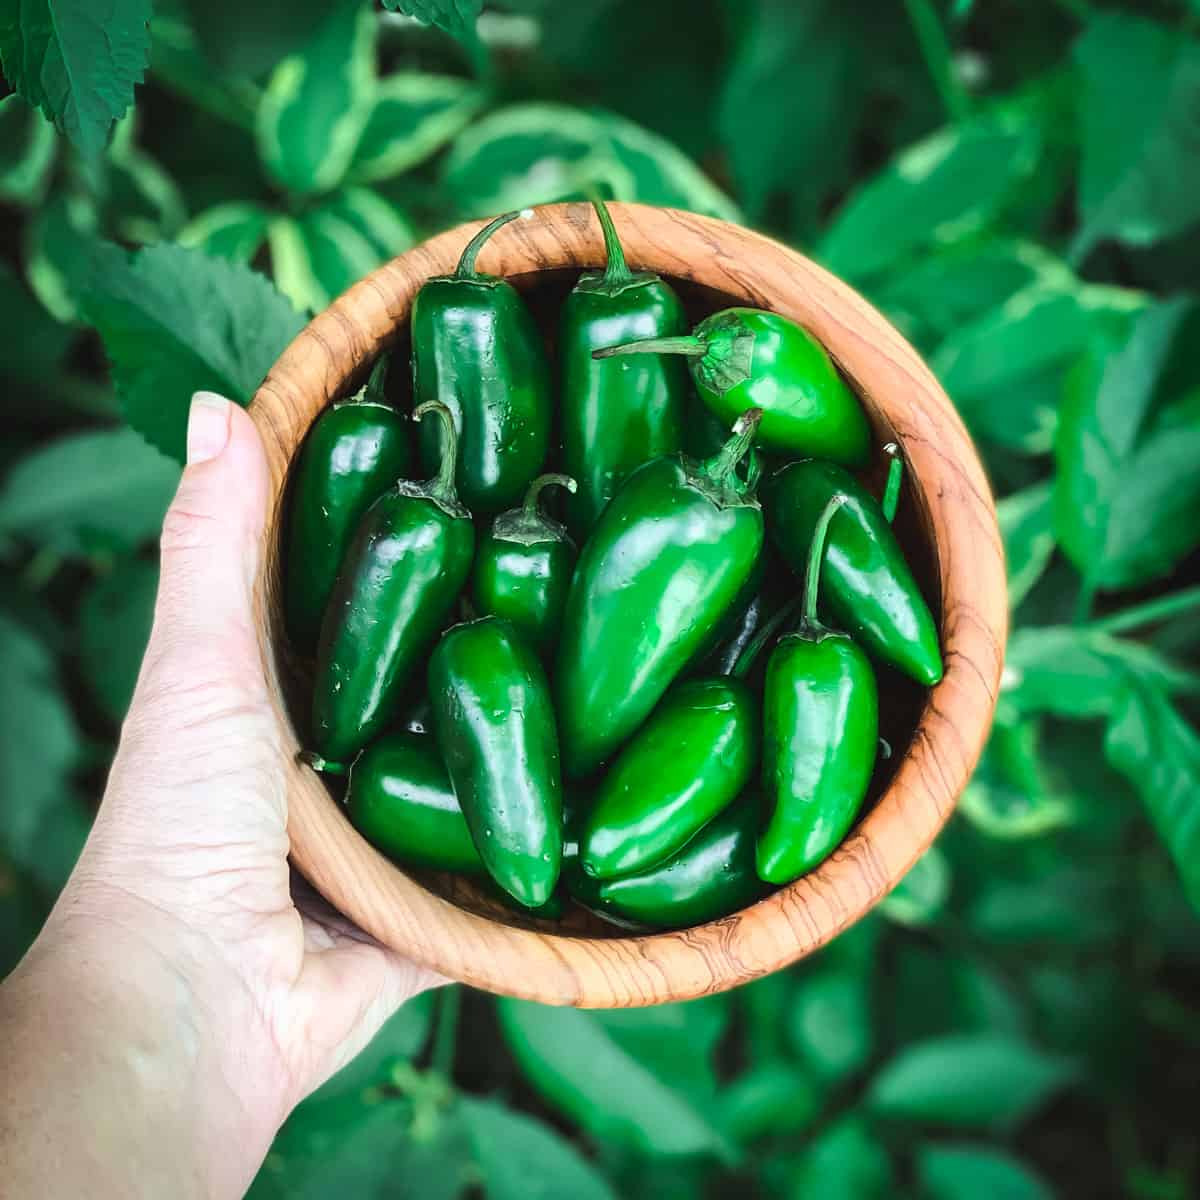 a hand holding a wooden bowl full of fresh jalapenos